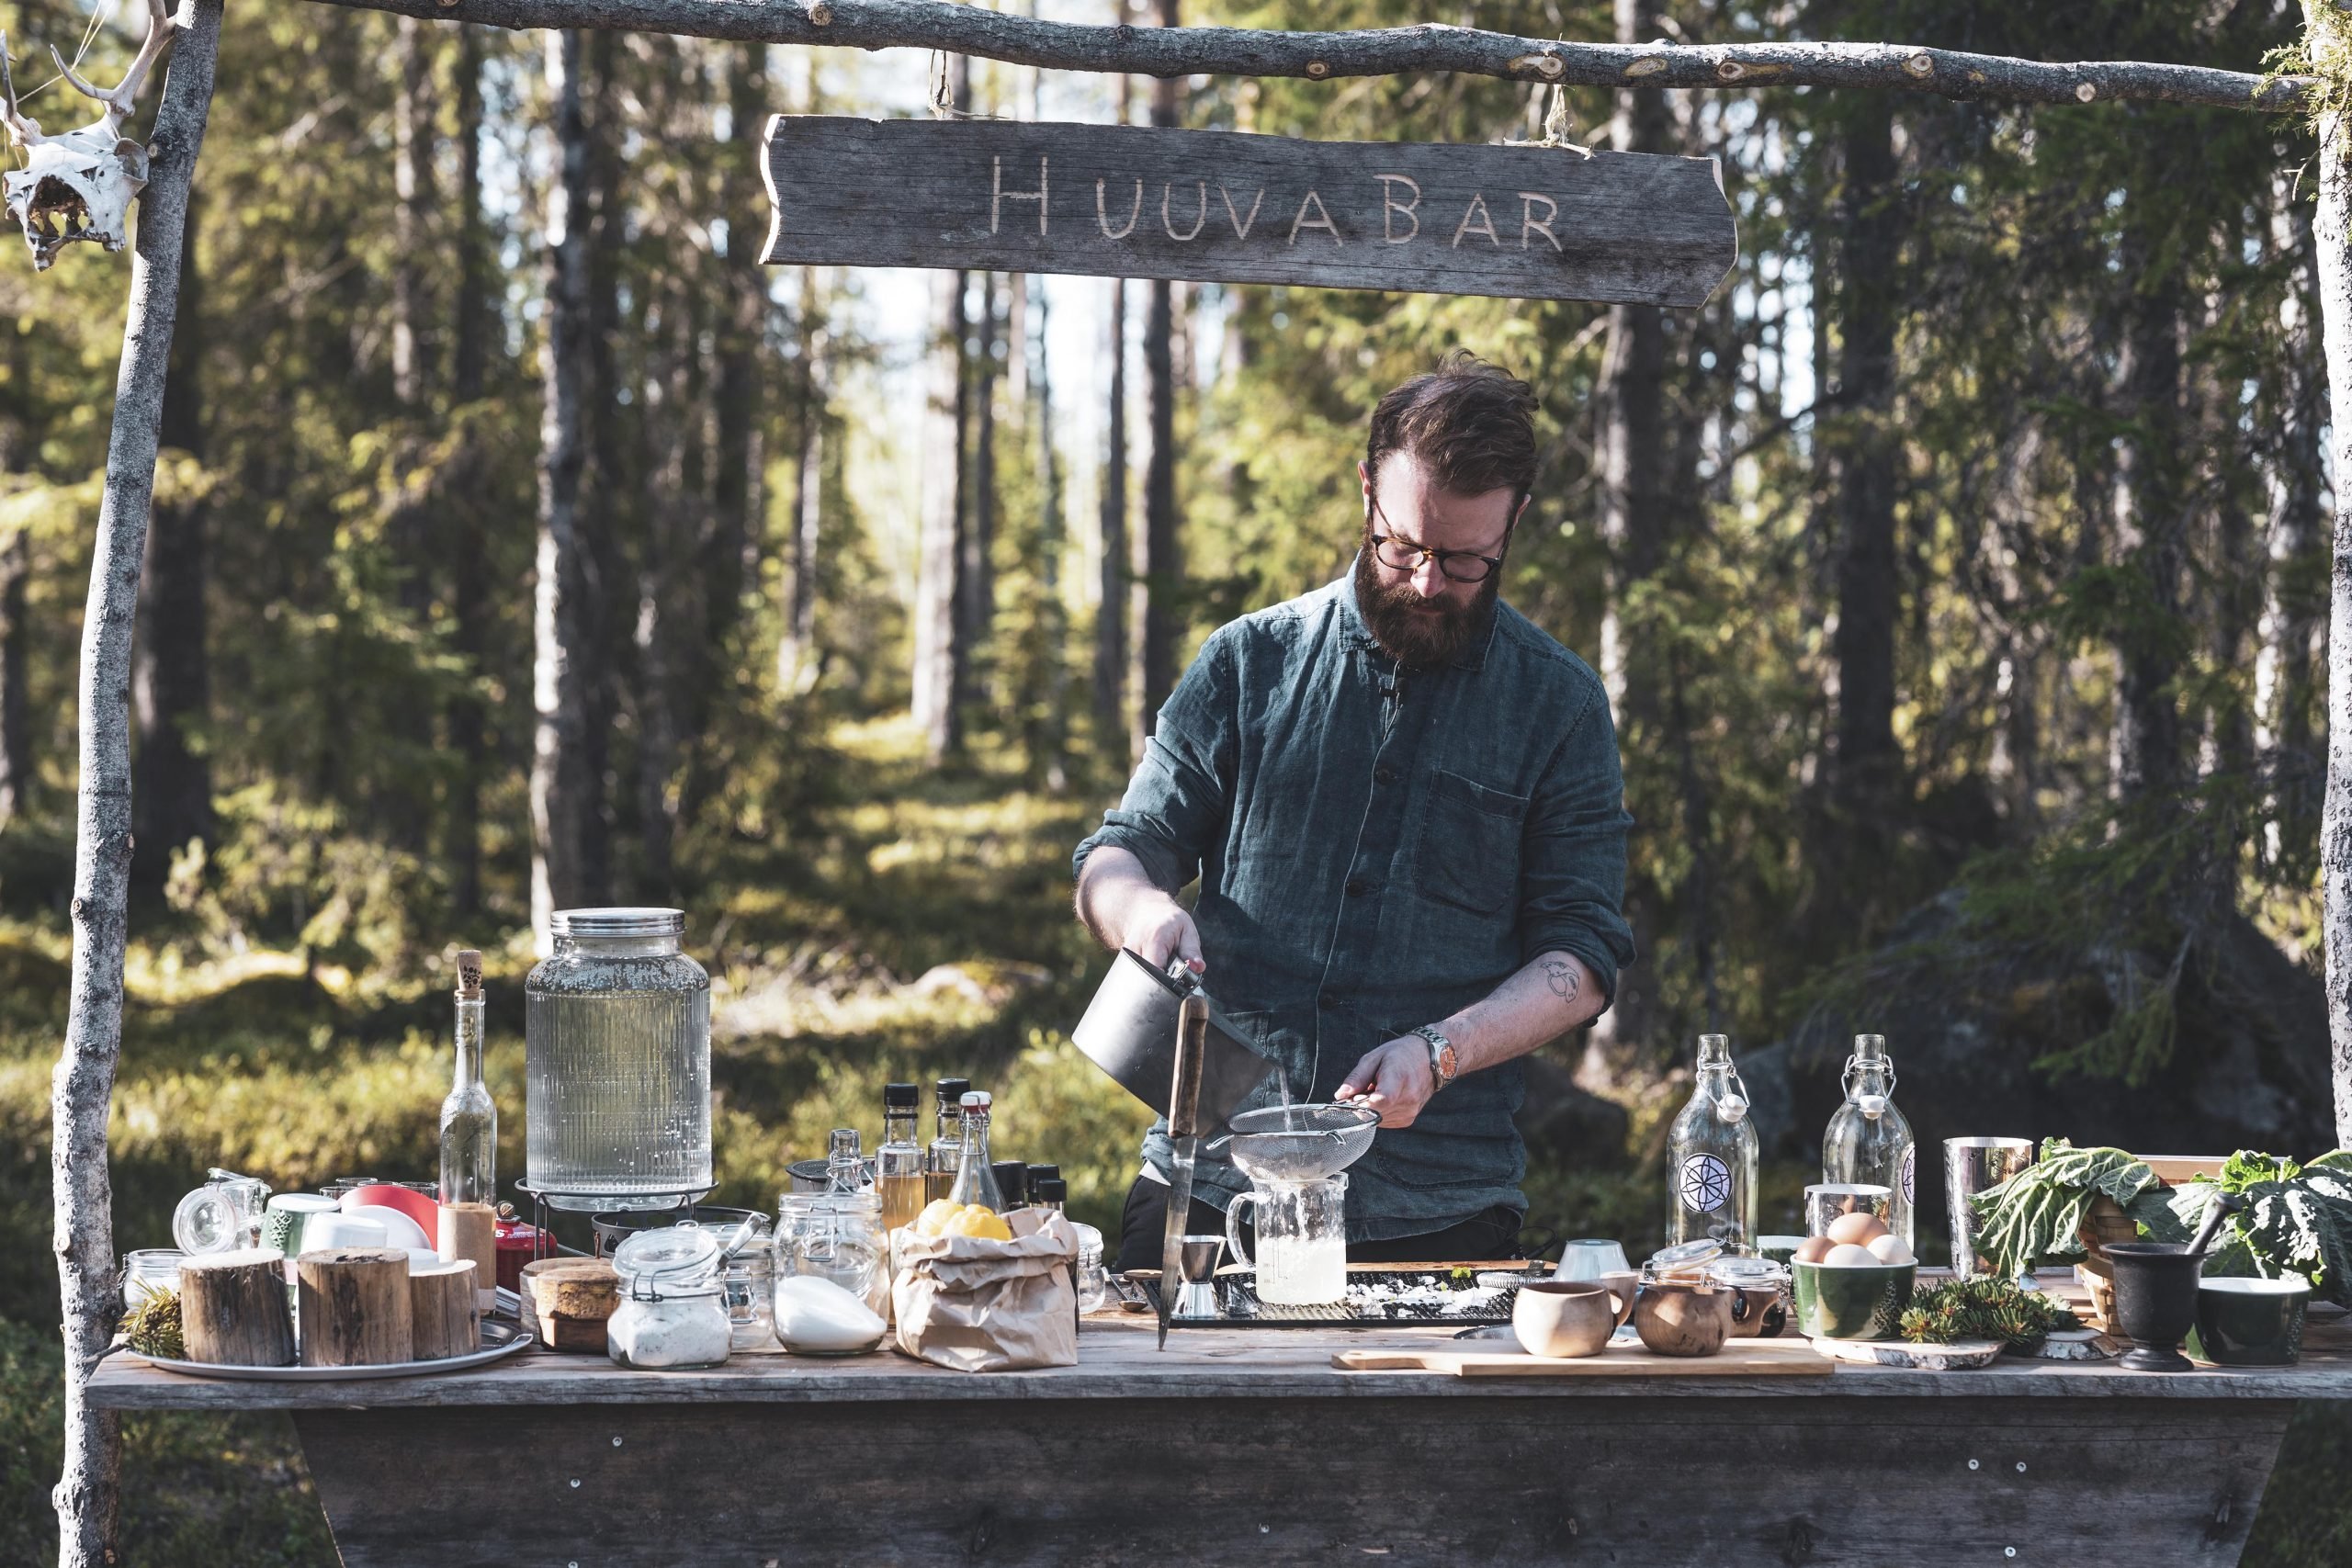 Fancy a mocktail? Bartender Emil Areng mixes up drinks with ingredients foraged nearby /